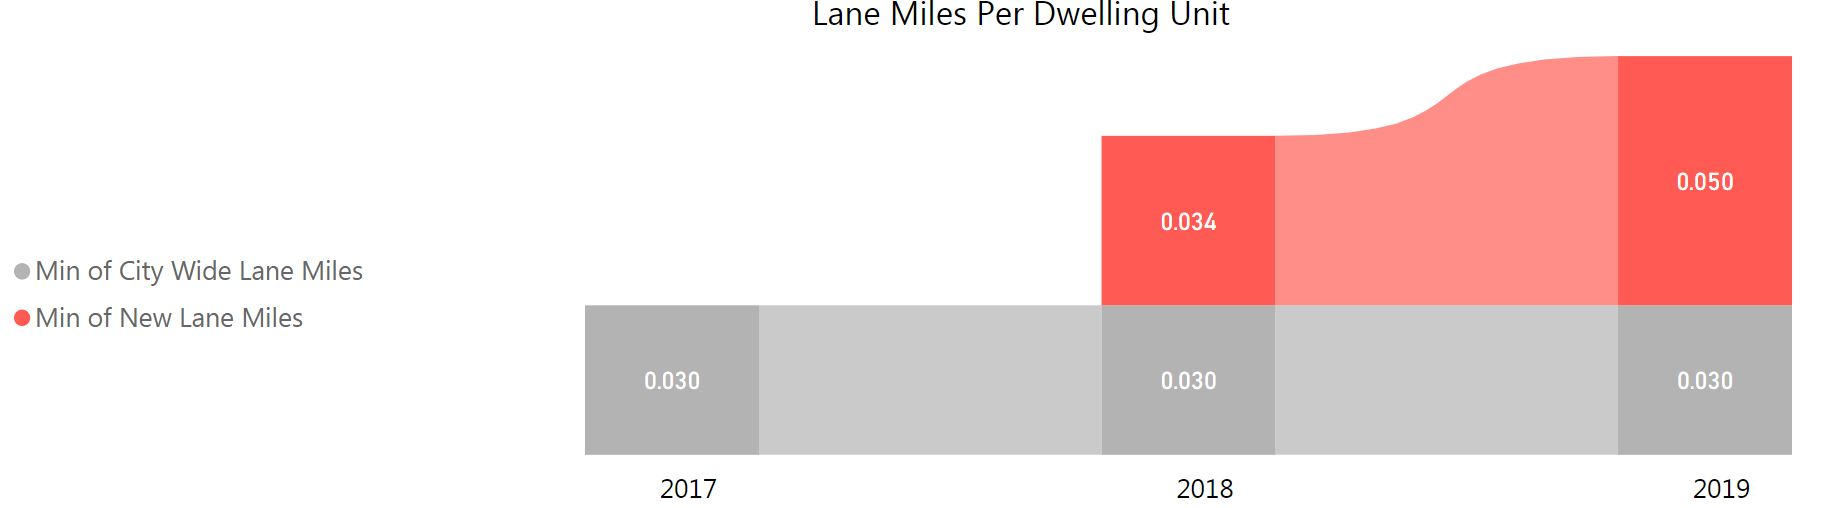 graph of lane miles per dwelling unit